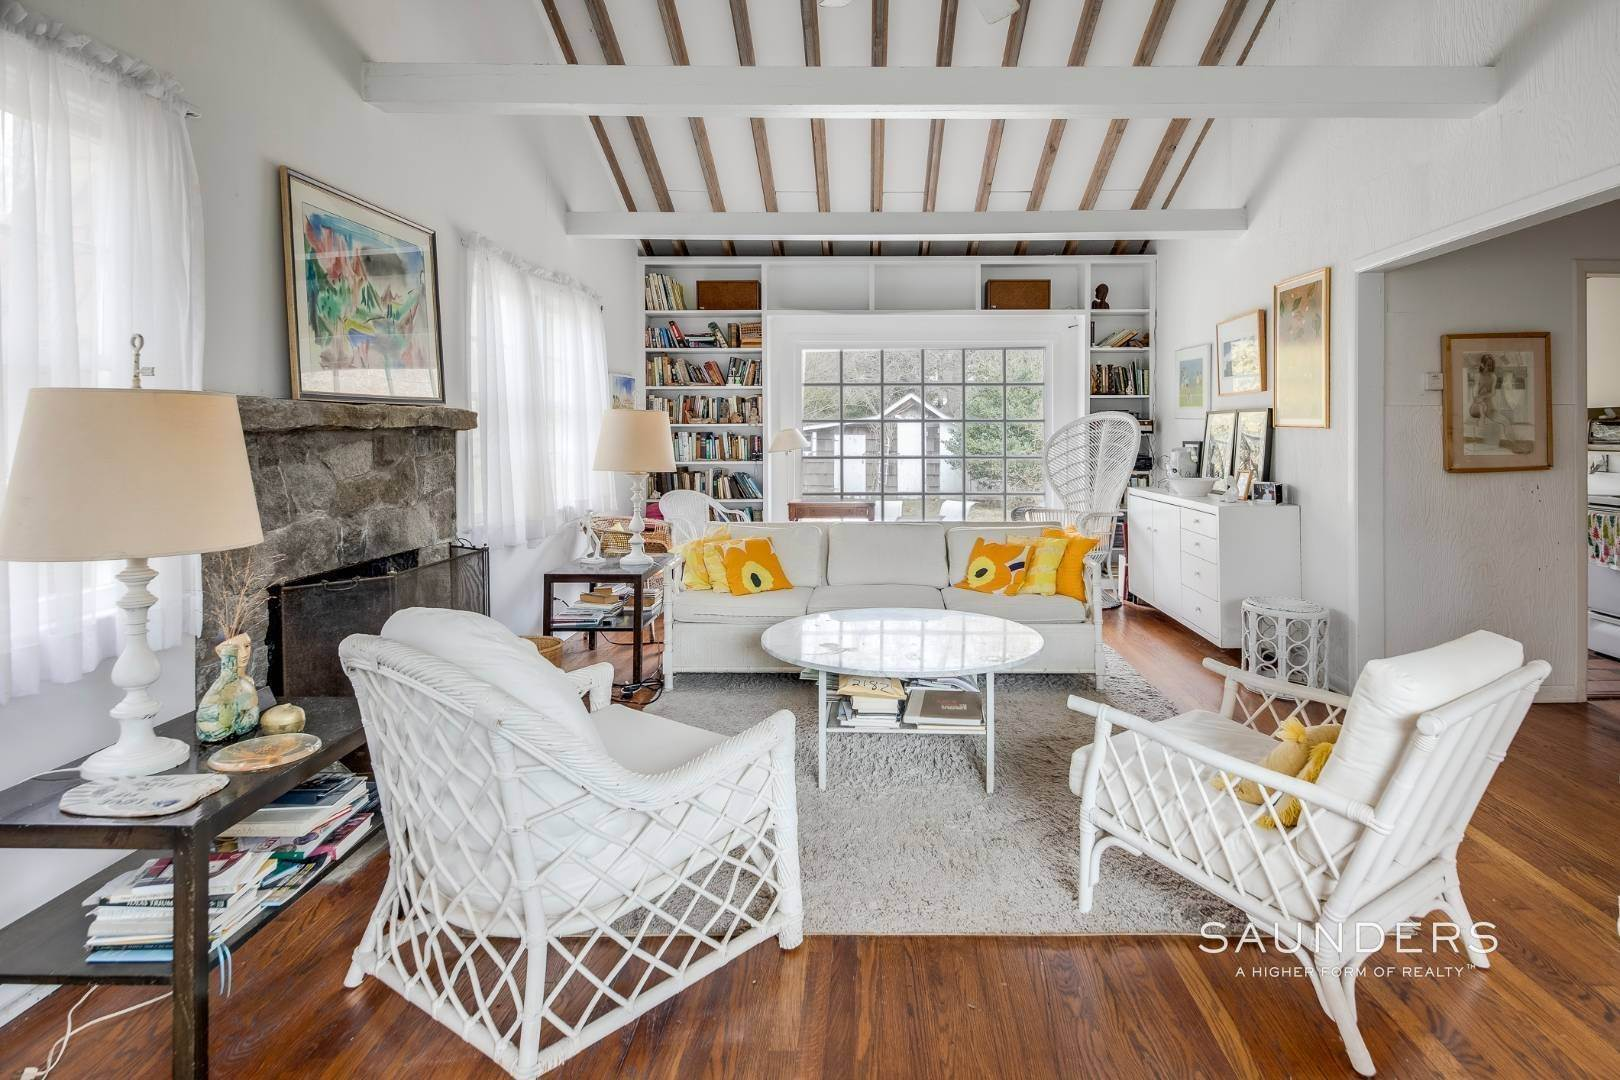 3. Single Family Homes for Sale at Amagansett Lanes Near Bluff Road 121 Hedges Lane, Amagansett, East Hampton Town, NY 11930